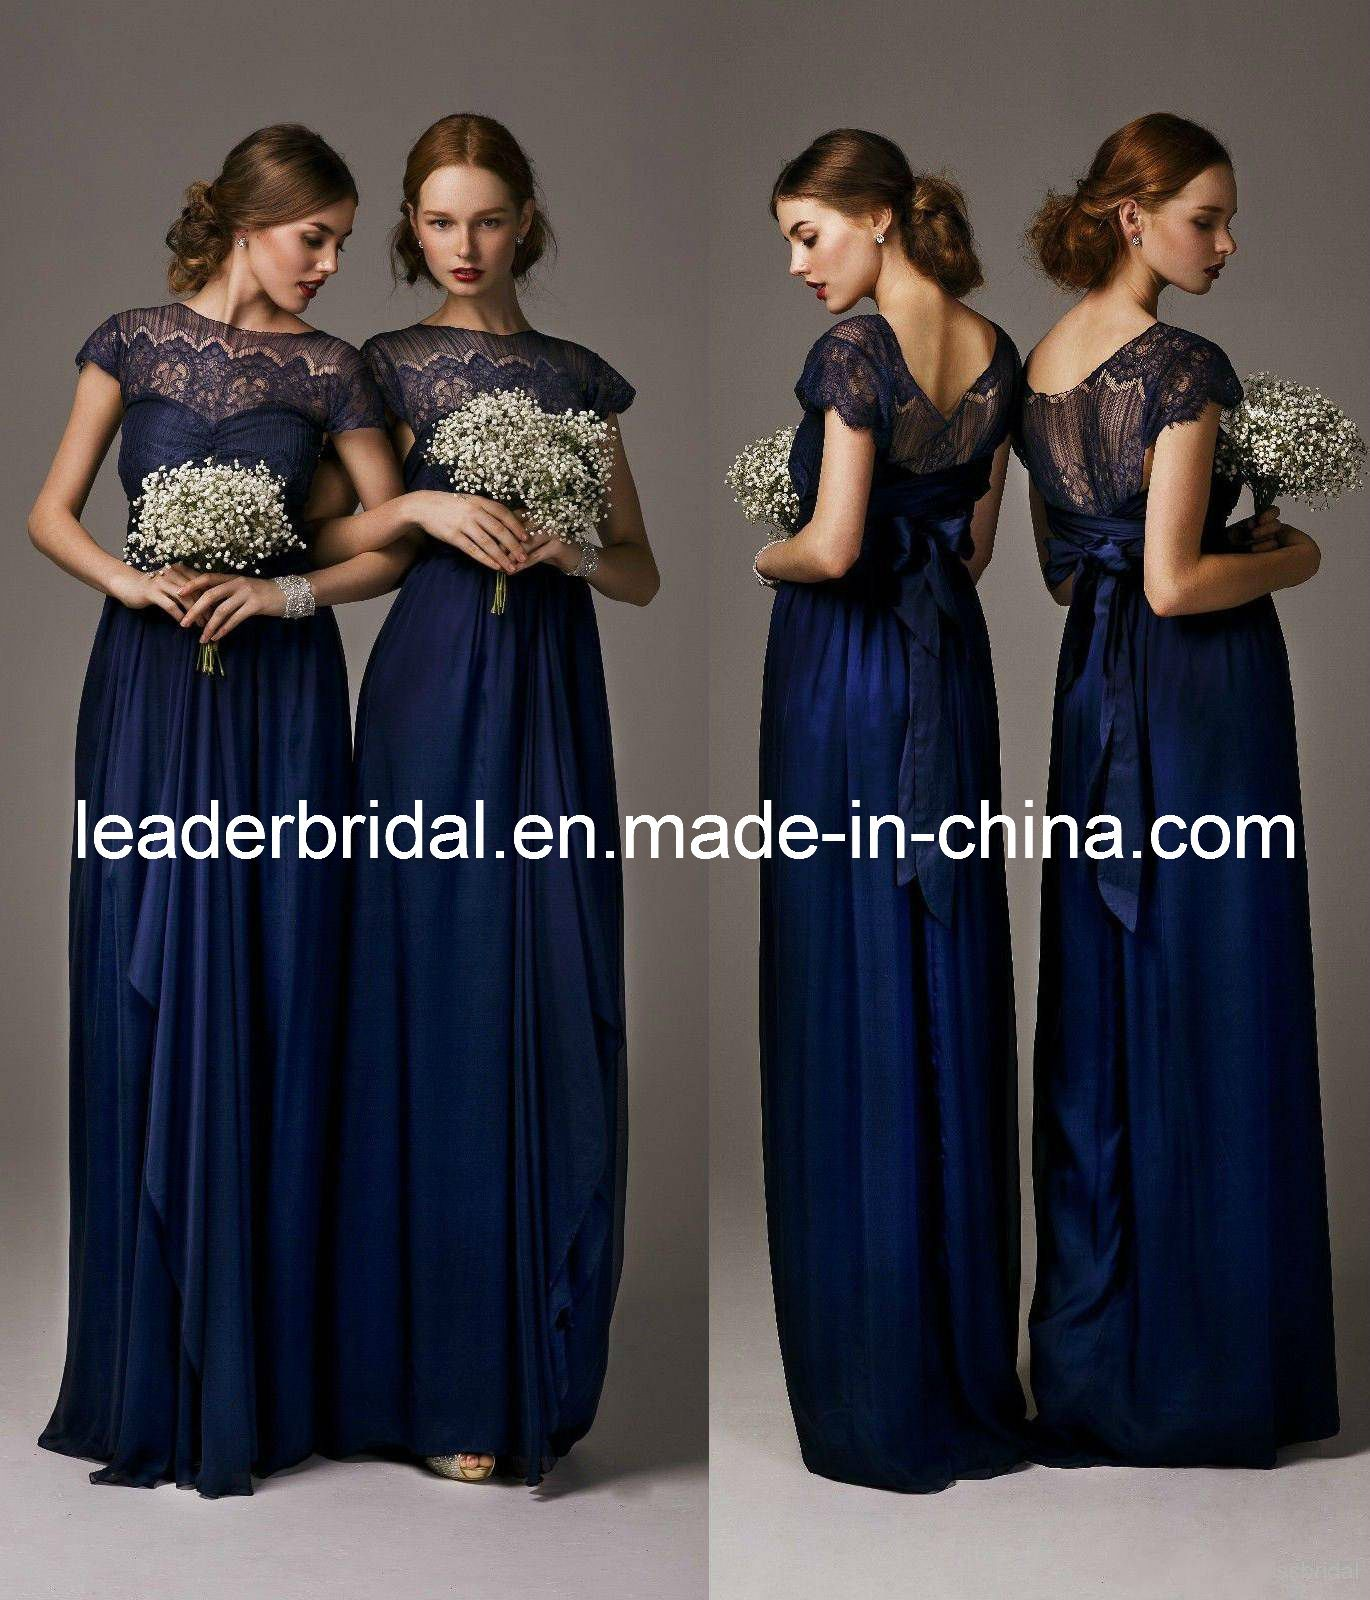 Wedding Navy Blue Lace Bridesmaid Dresses unique navy bridesmaid dresses google search blue dresseslace